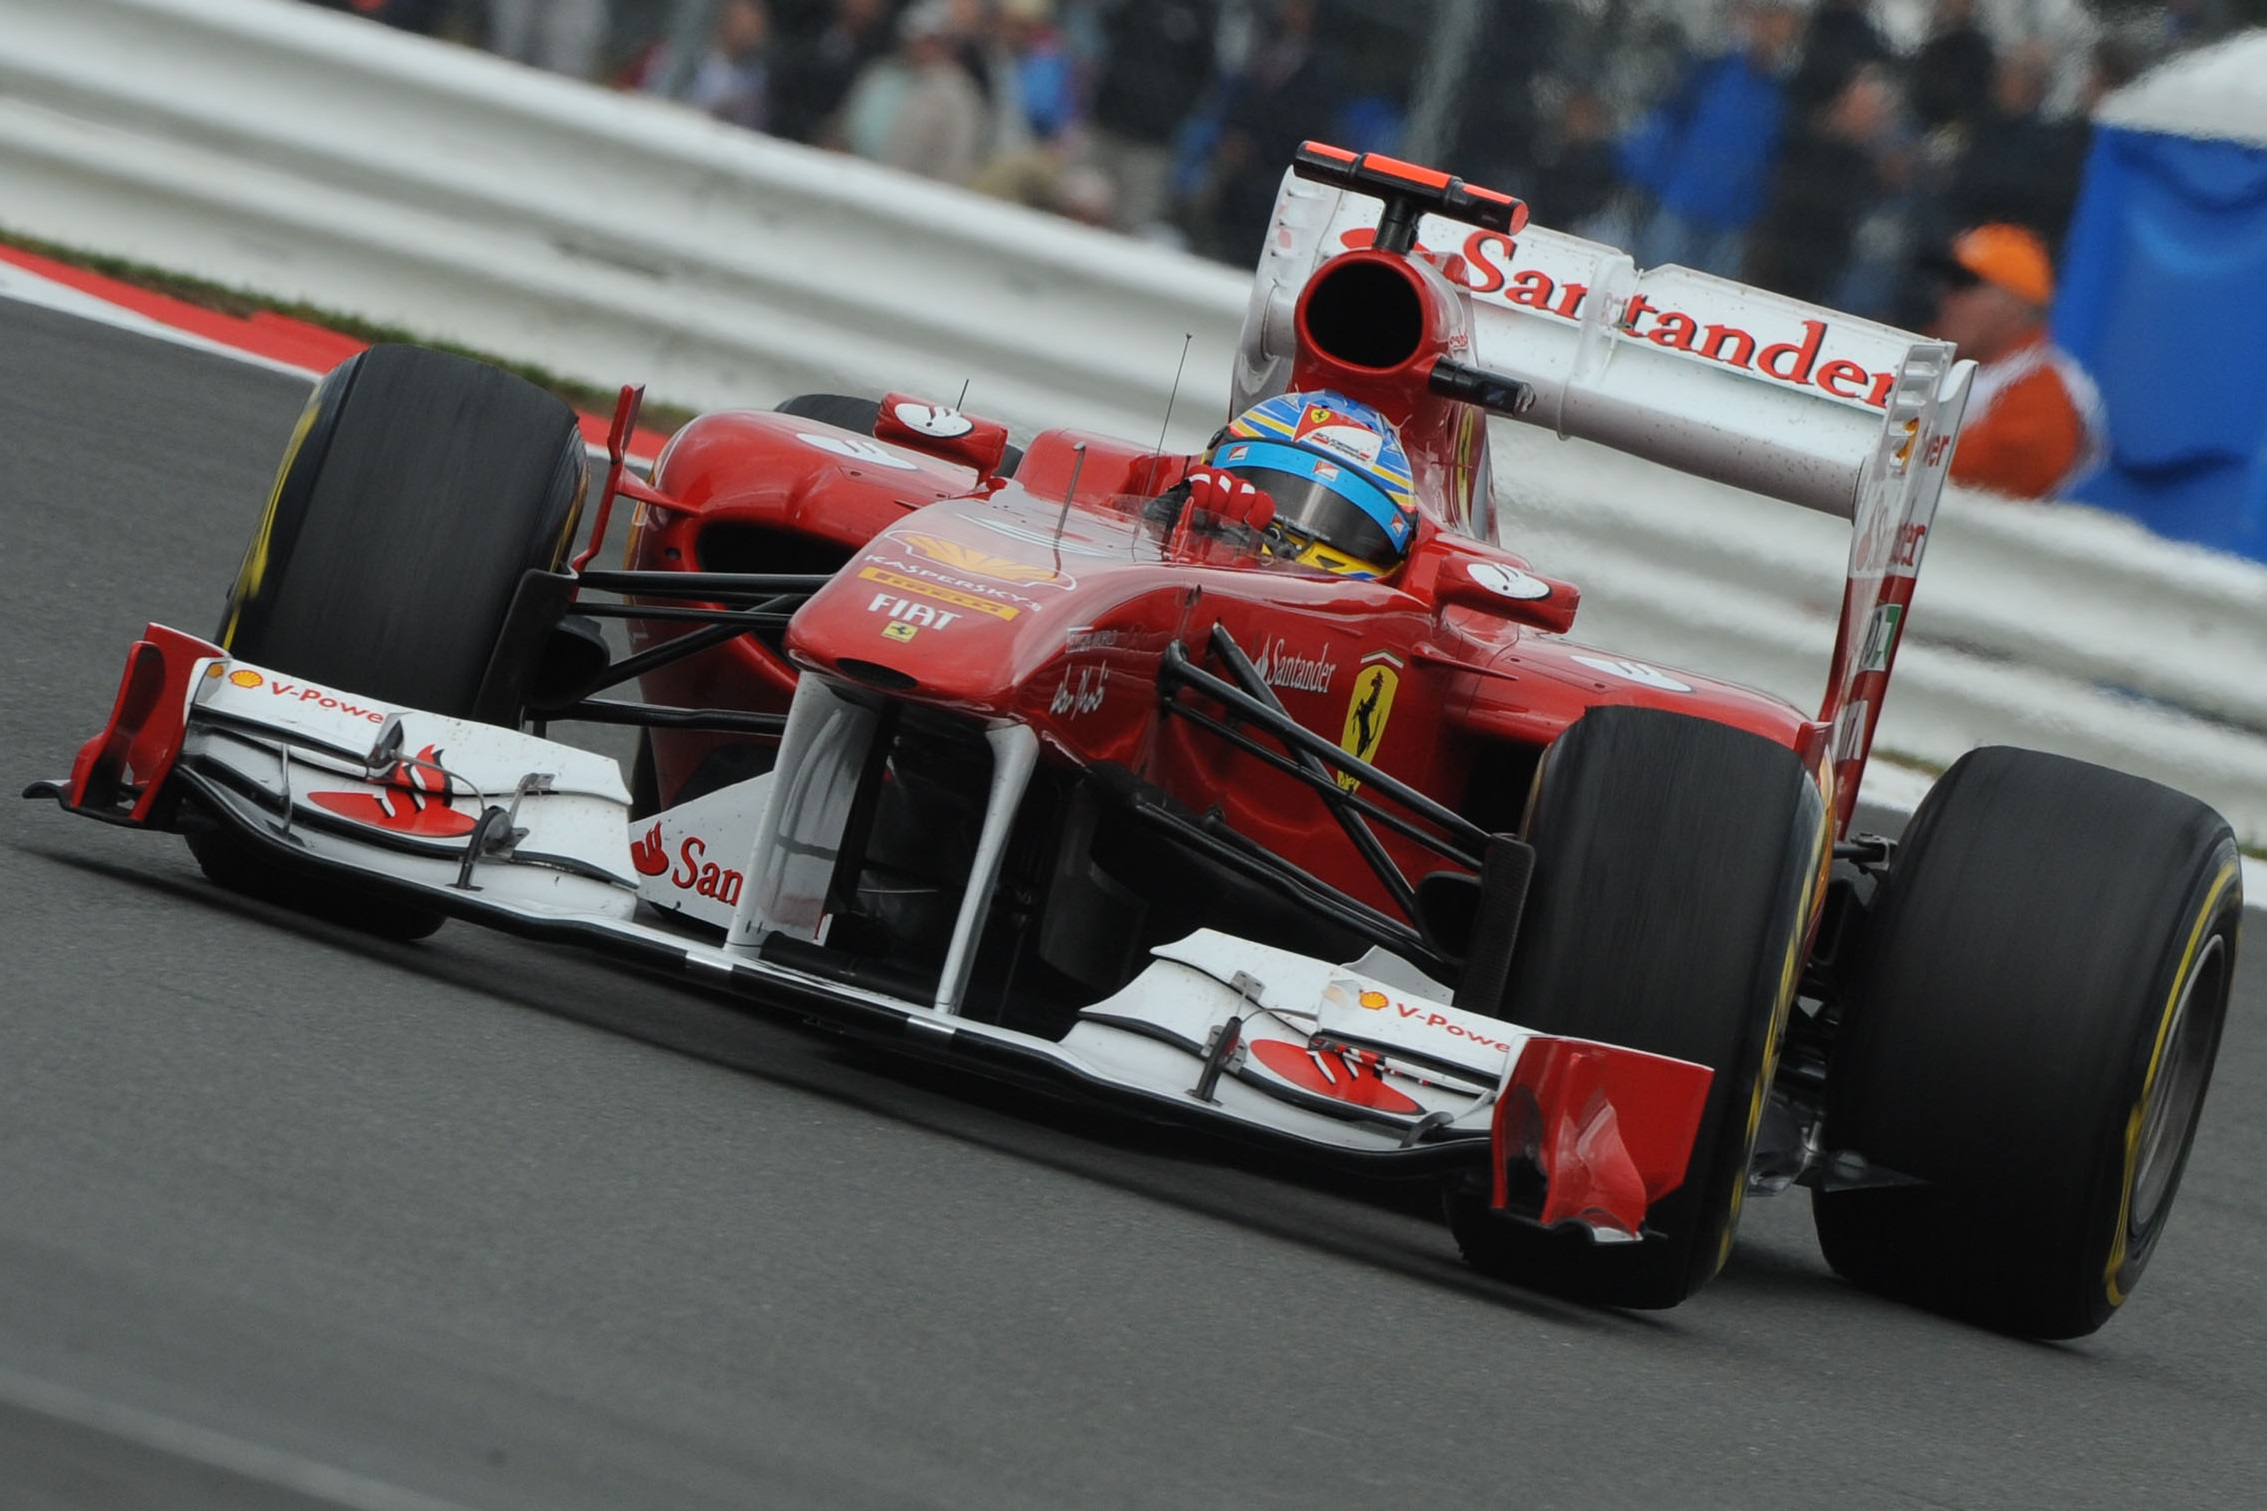 fernando-alonso-ferrari-150th-italia-great-britain-gp-silverstone-f1-2011-victory-front-push-rod-suspension